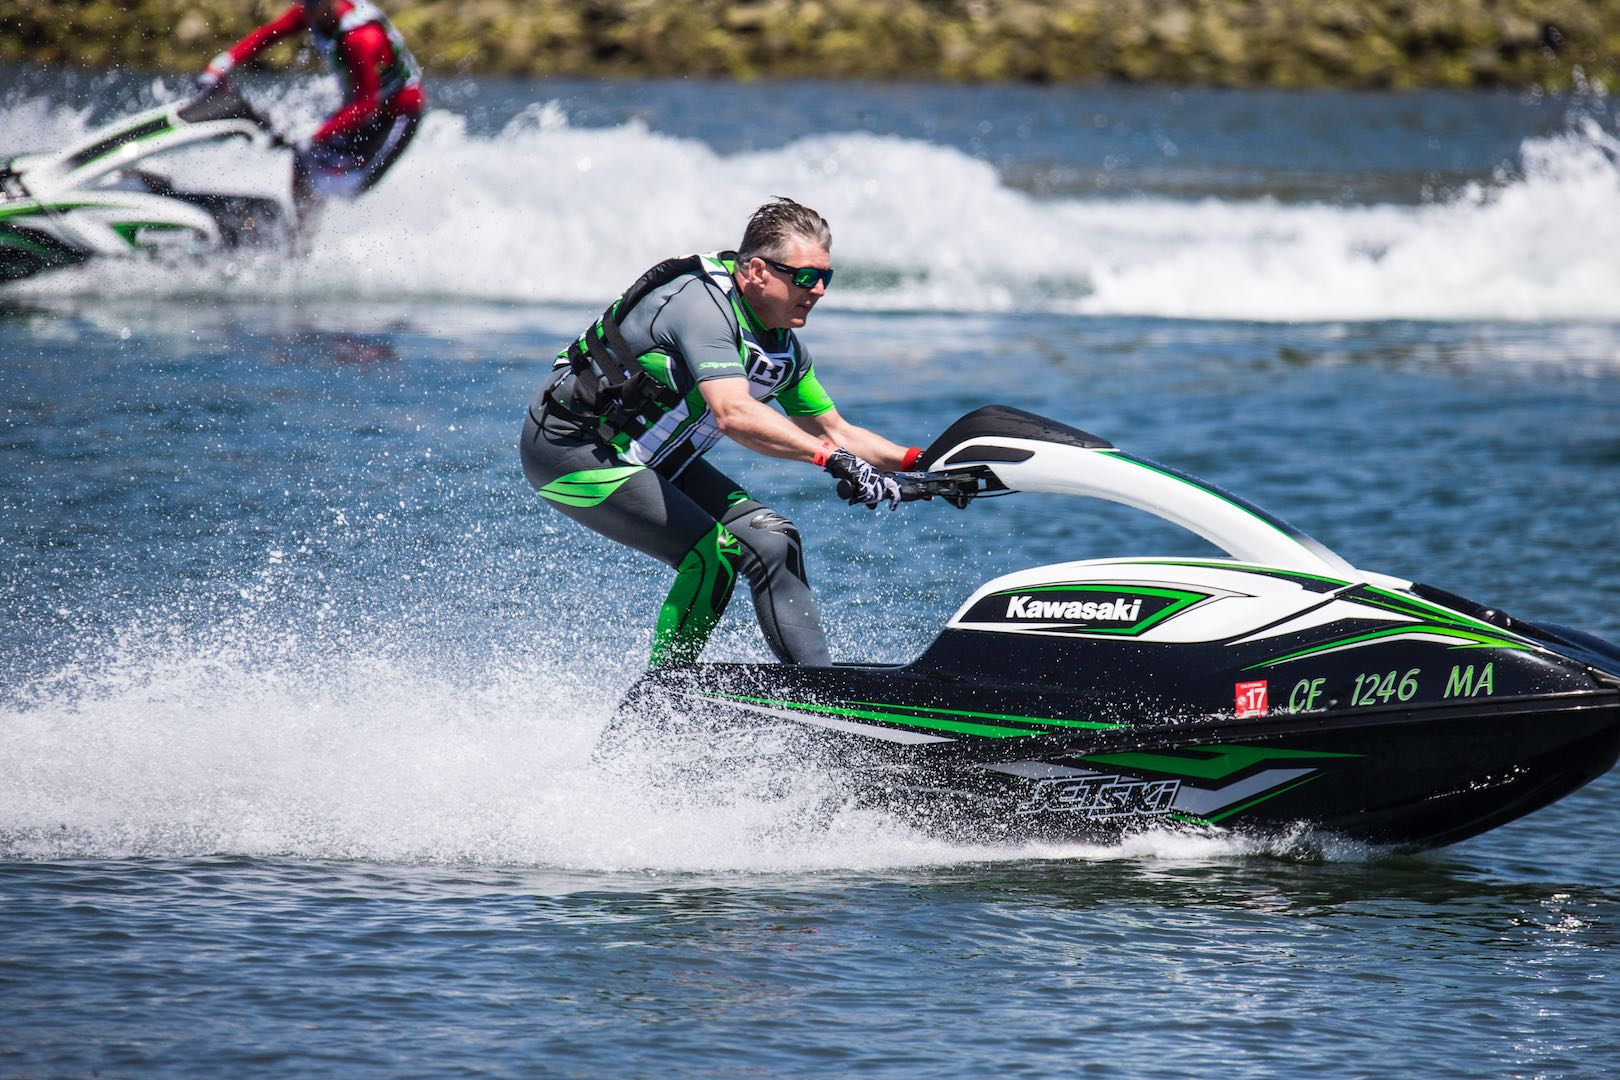 Kawasaki SX-R Jet Ski First Ride Review | 14 Fast Facts